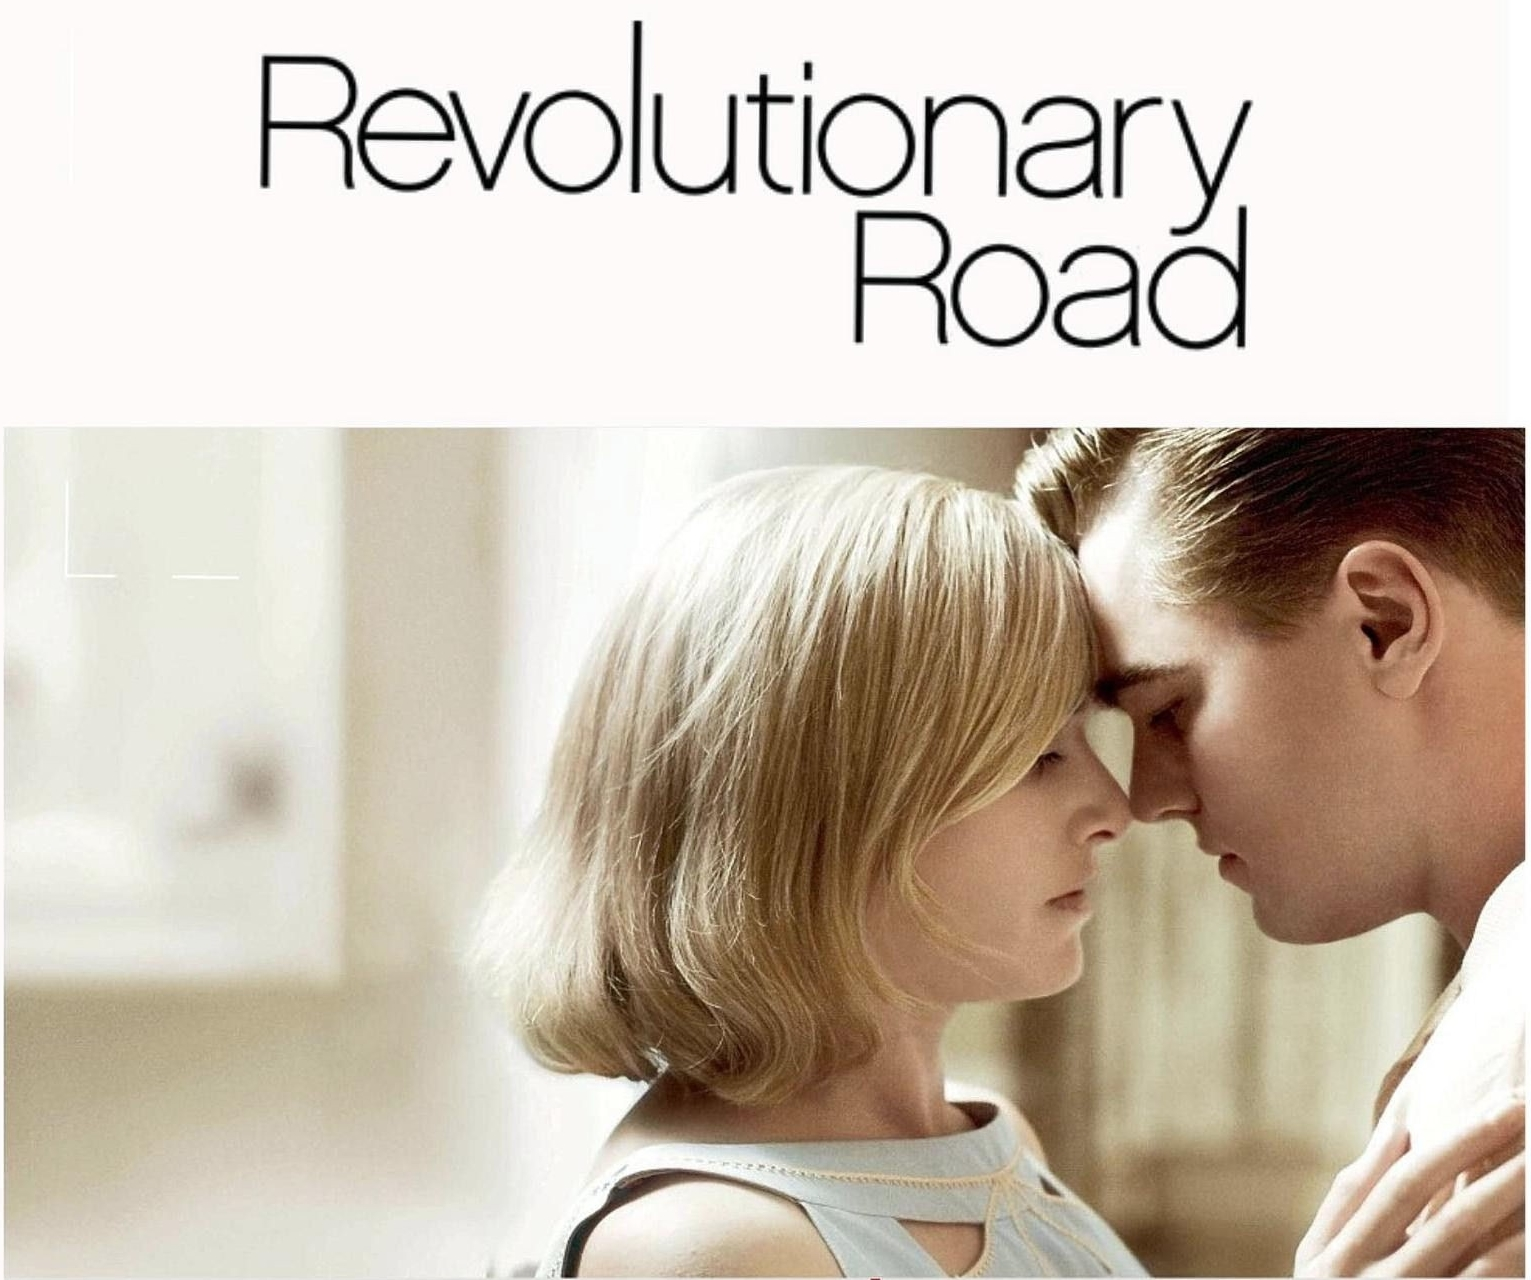 revolutionary road - photo #20